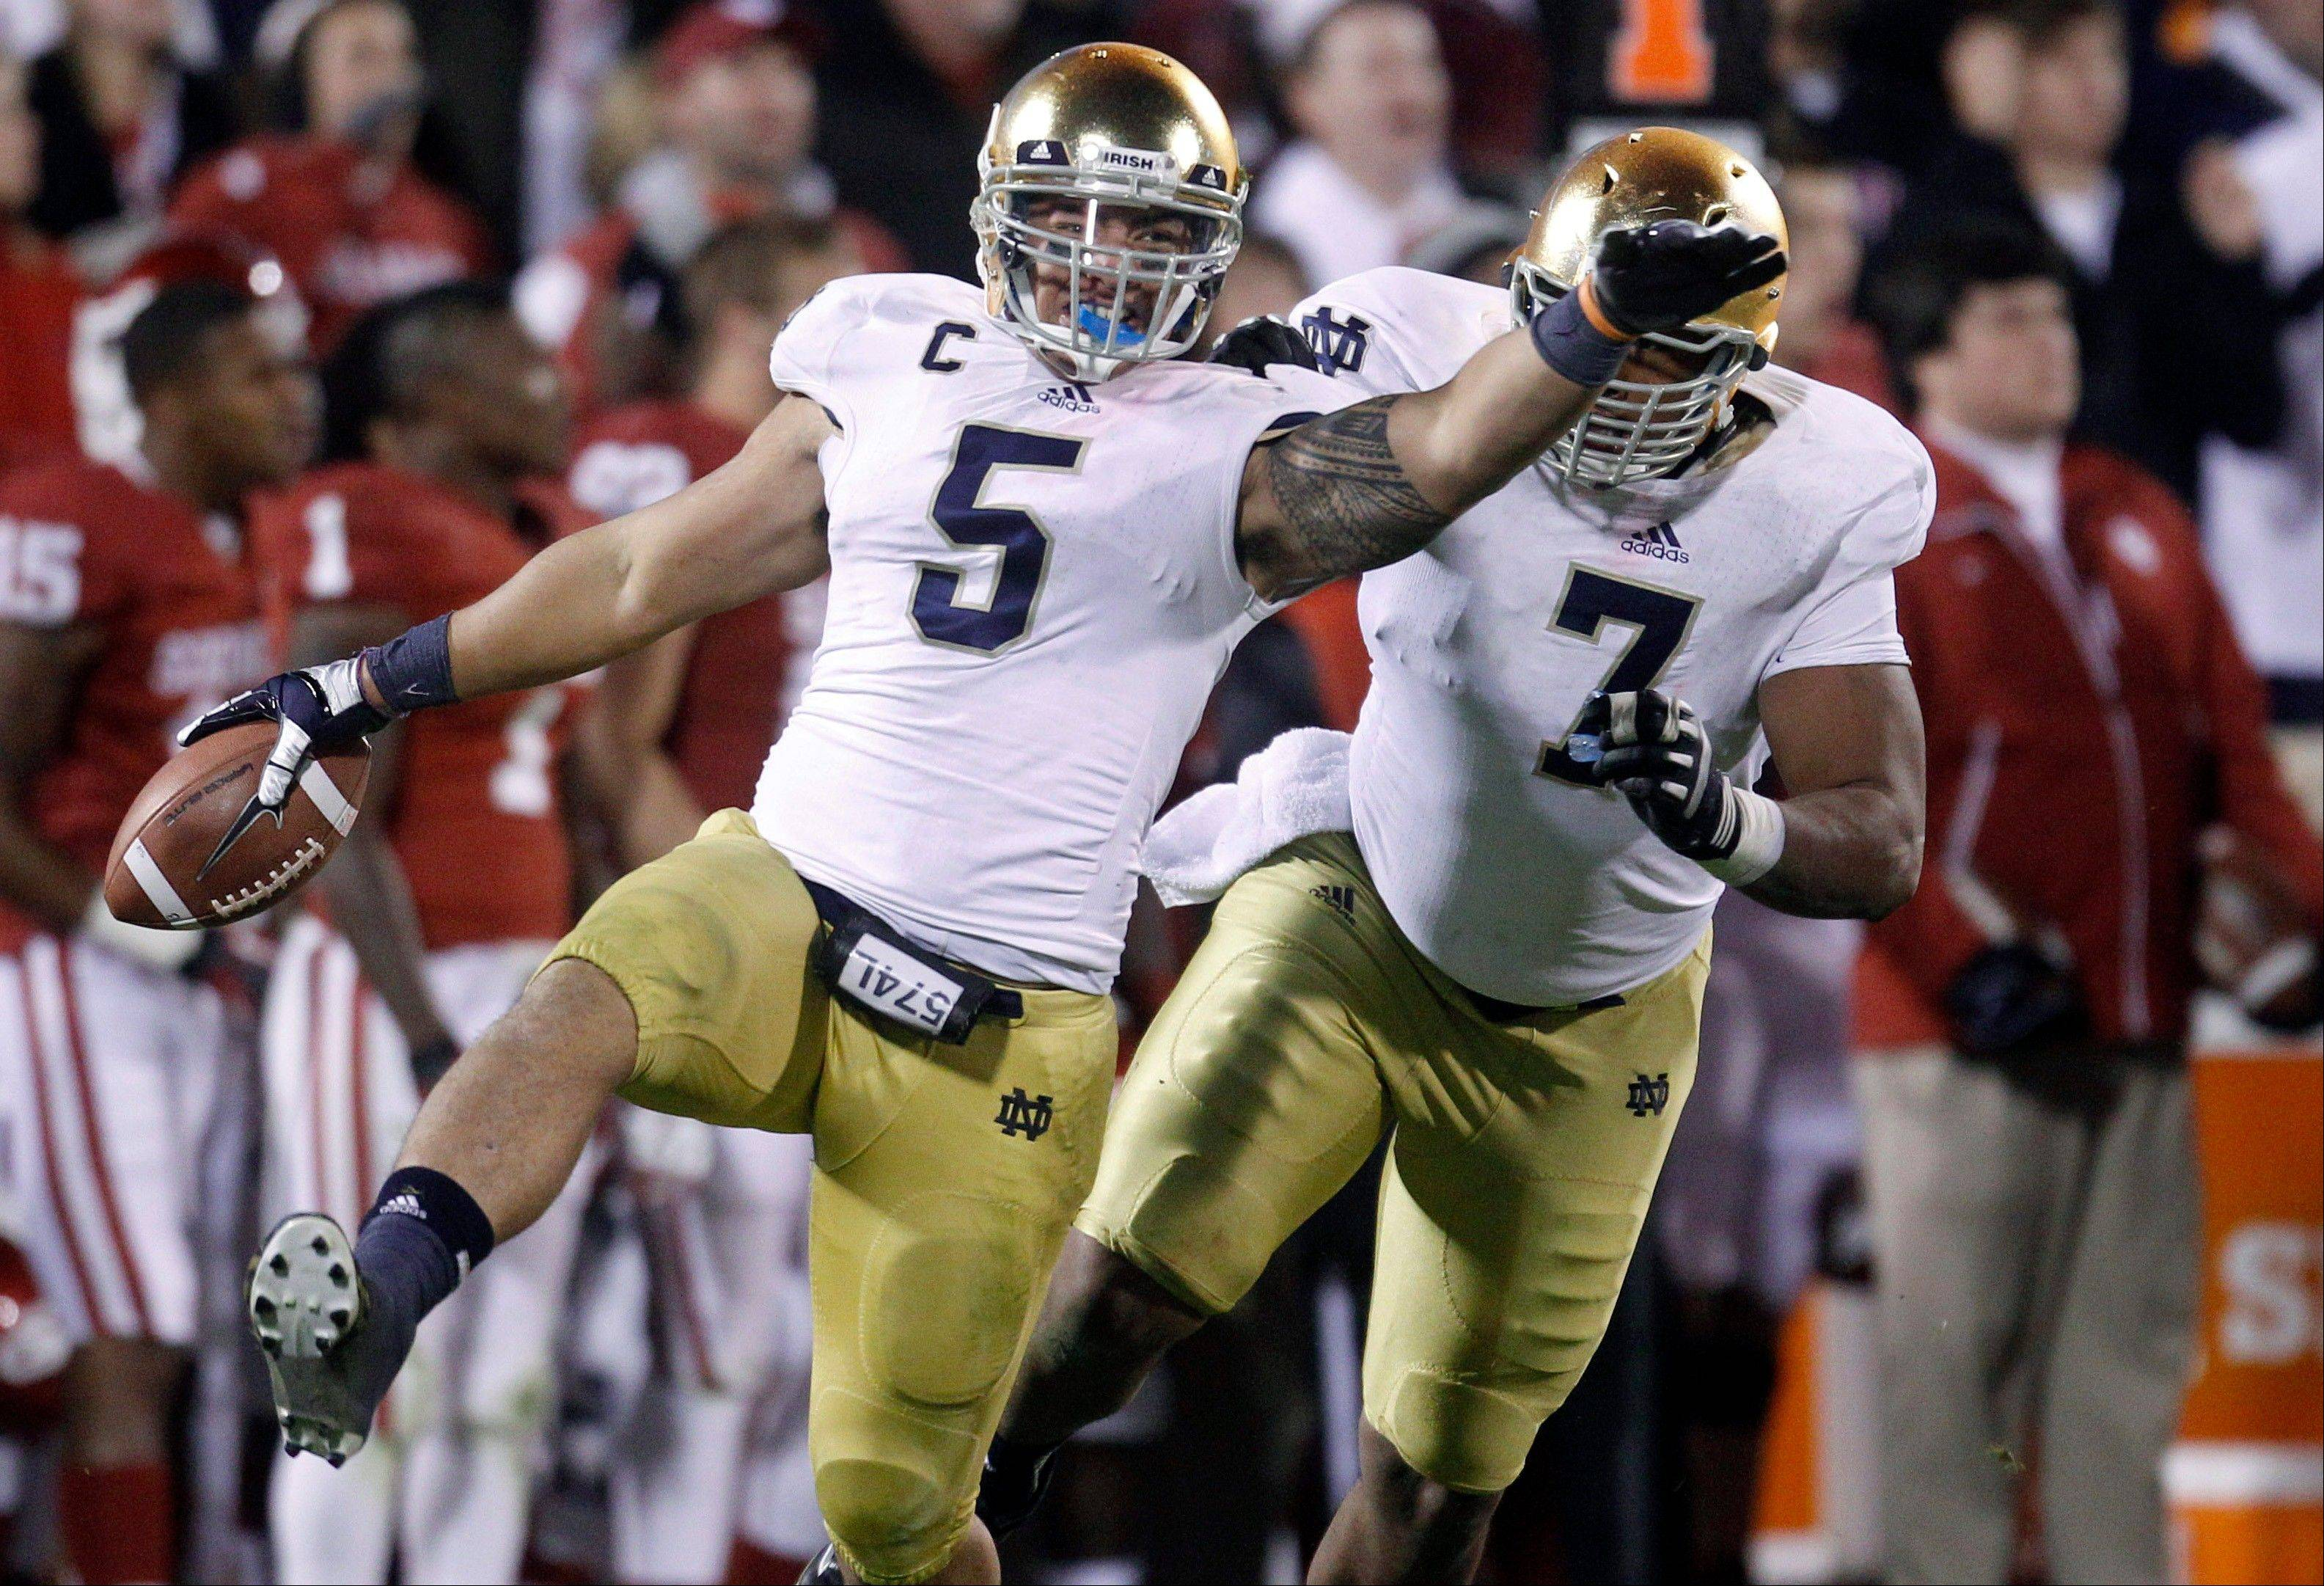 In this Oct. 27, 2012 file photo, Notre Dame linebacker Manti Te�o (5) celebrates with teammate Stephon Tuitt (7) after an interception against Oklahoma in the fourth quarter of an NCAA college football game in Norman, Okla. Te�o and the Irish will play Alabama for the national championship, the highlight of this year�s 35 bowl games.